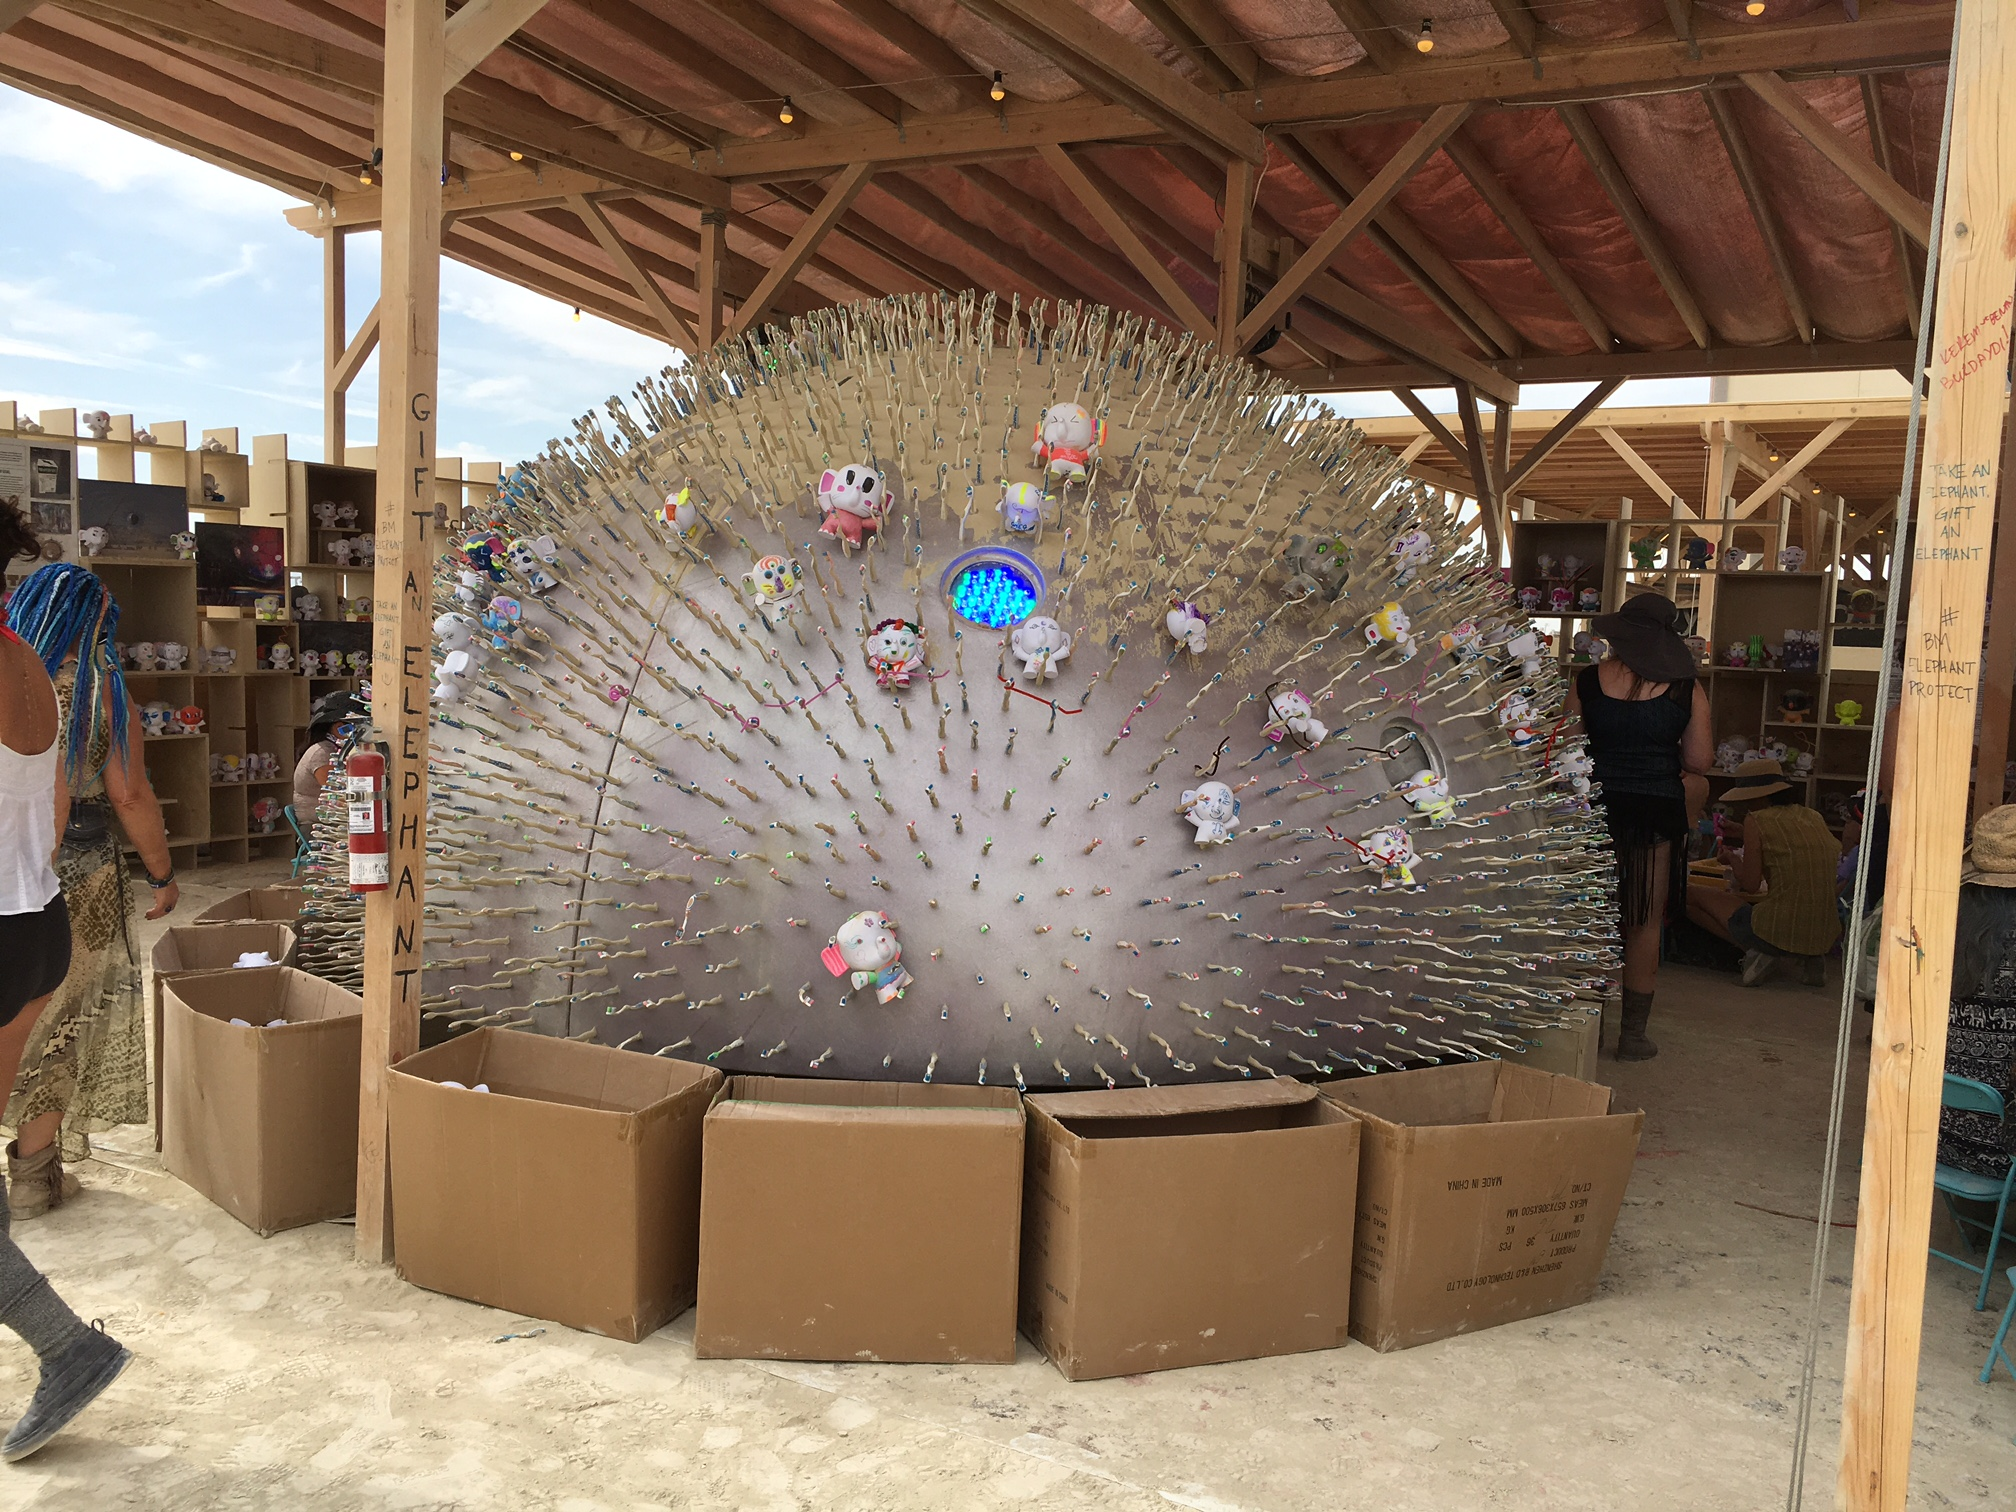 Precision Brush; Brush with Life: Precision Brush takes on  the Burning Man